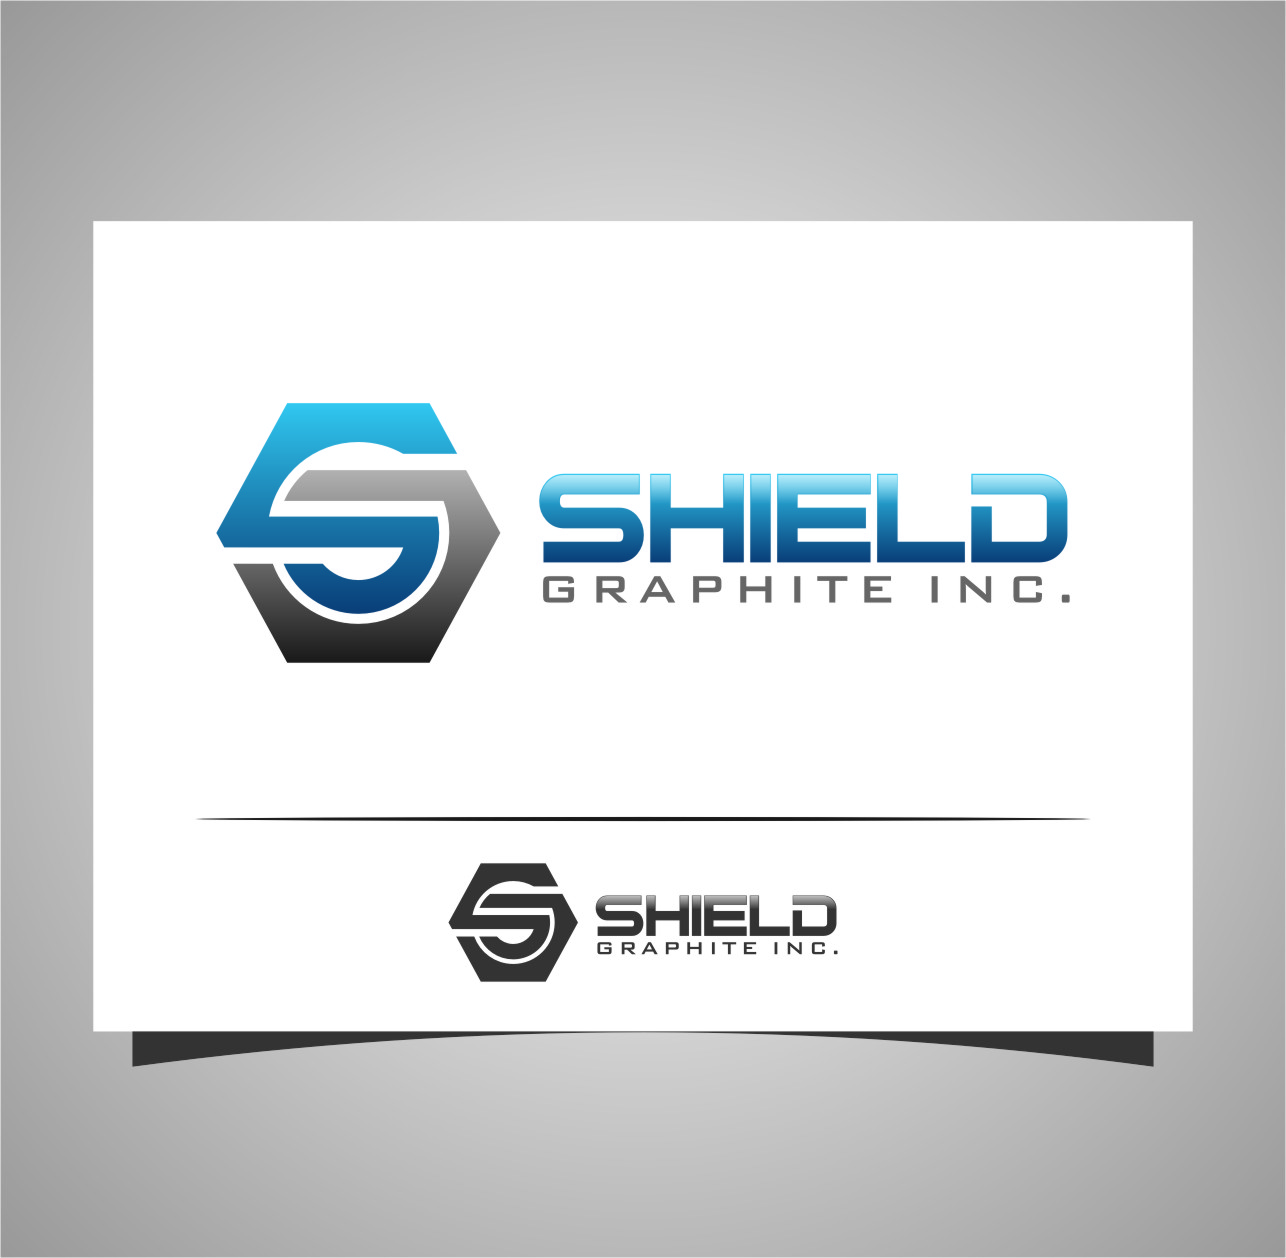 Logo Design by Ngepet_art - Entry No. 100 in the Logo Design Contest Imaginative Logo Design for Shield Graphite Inc..